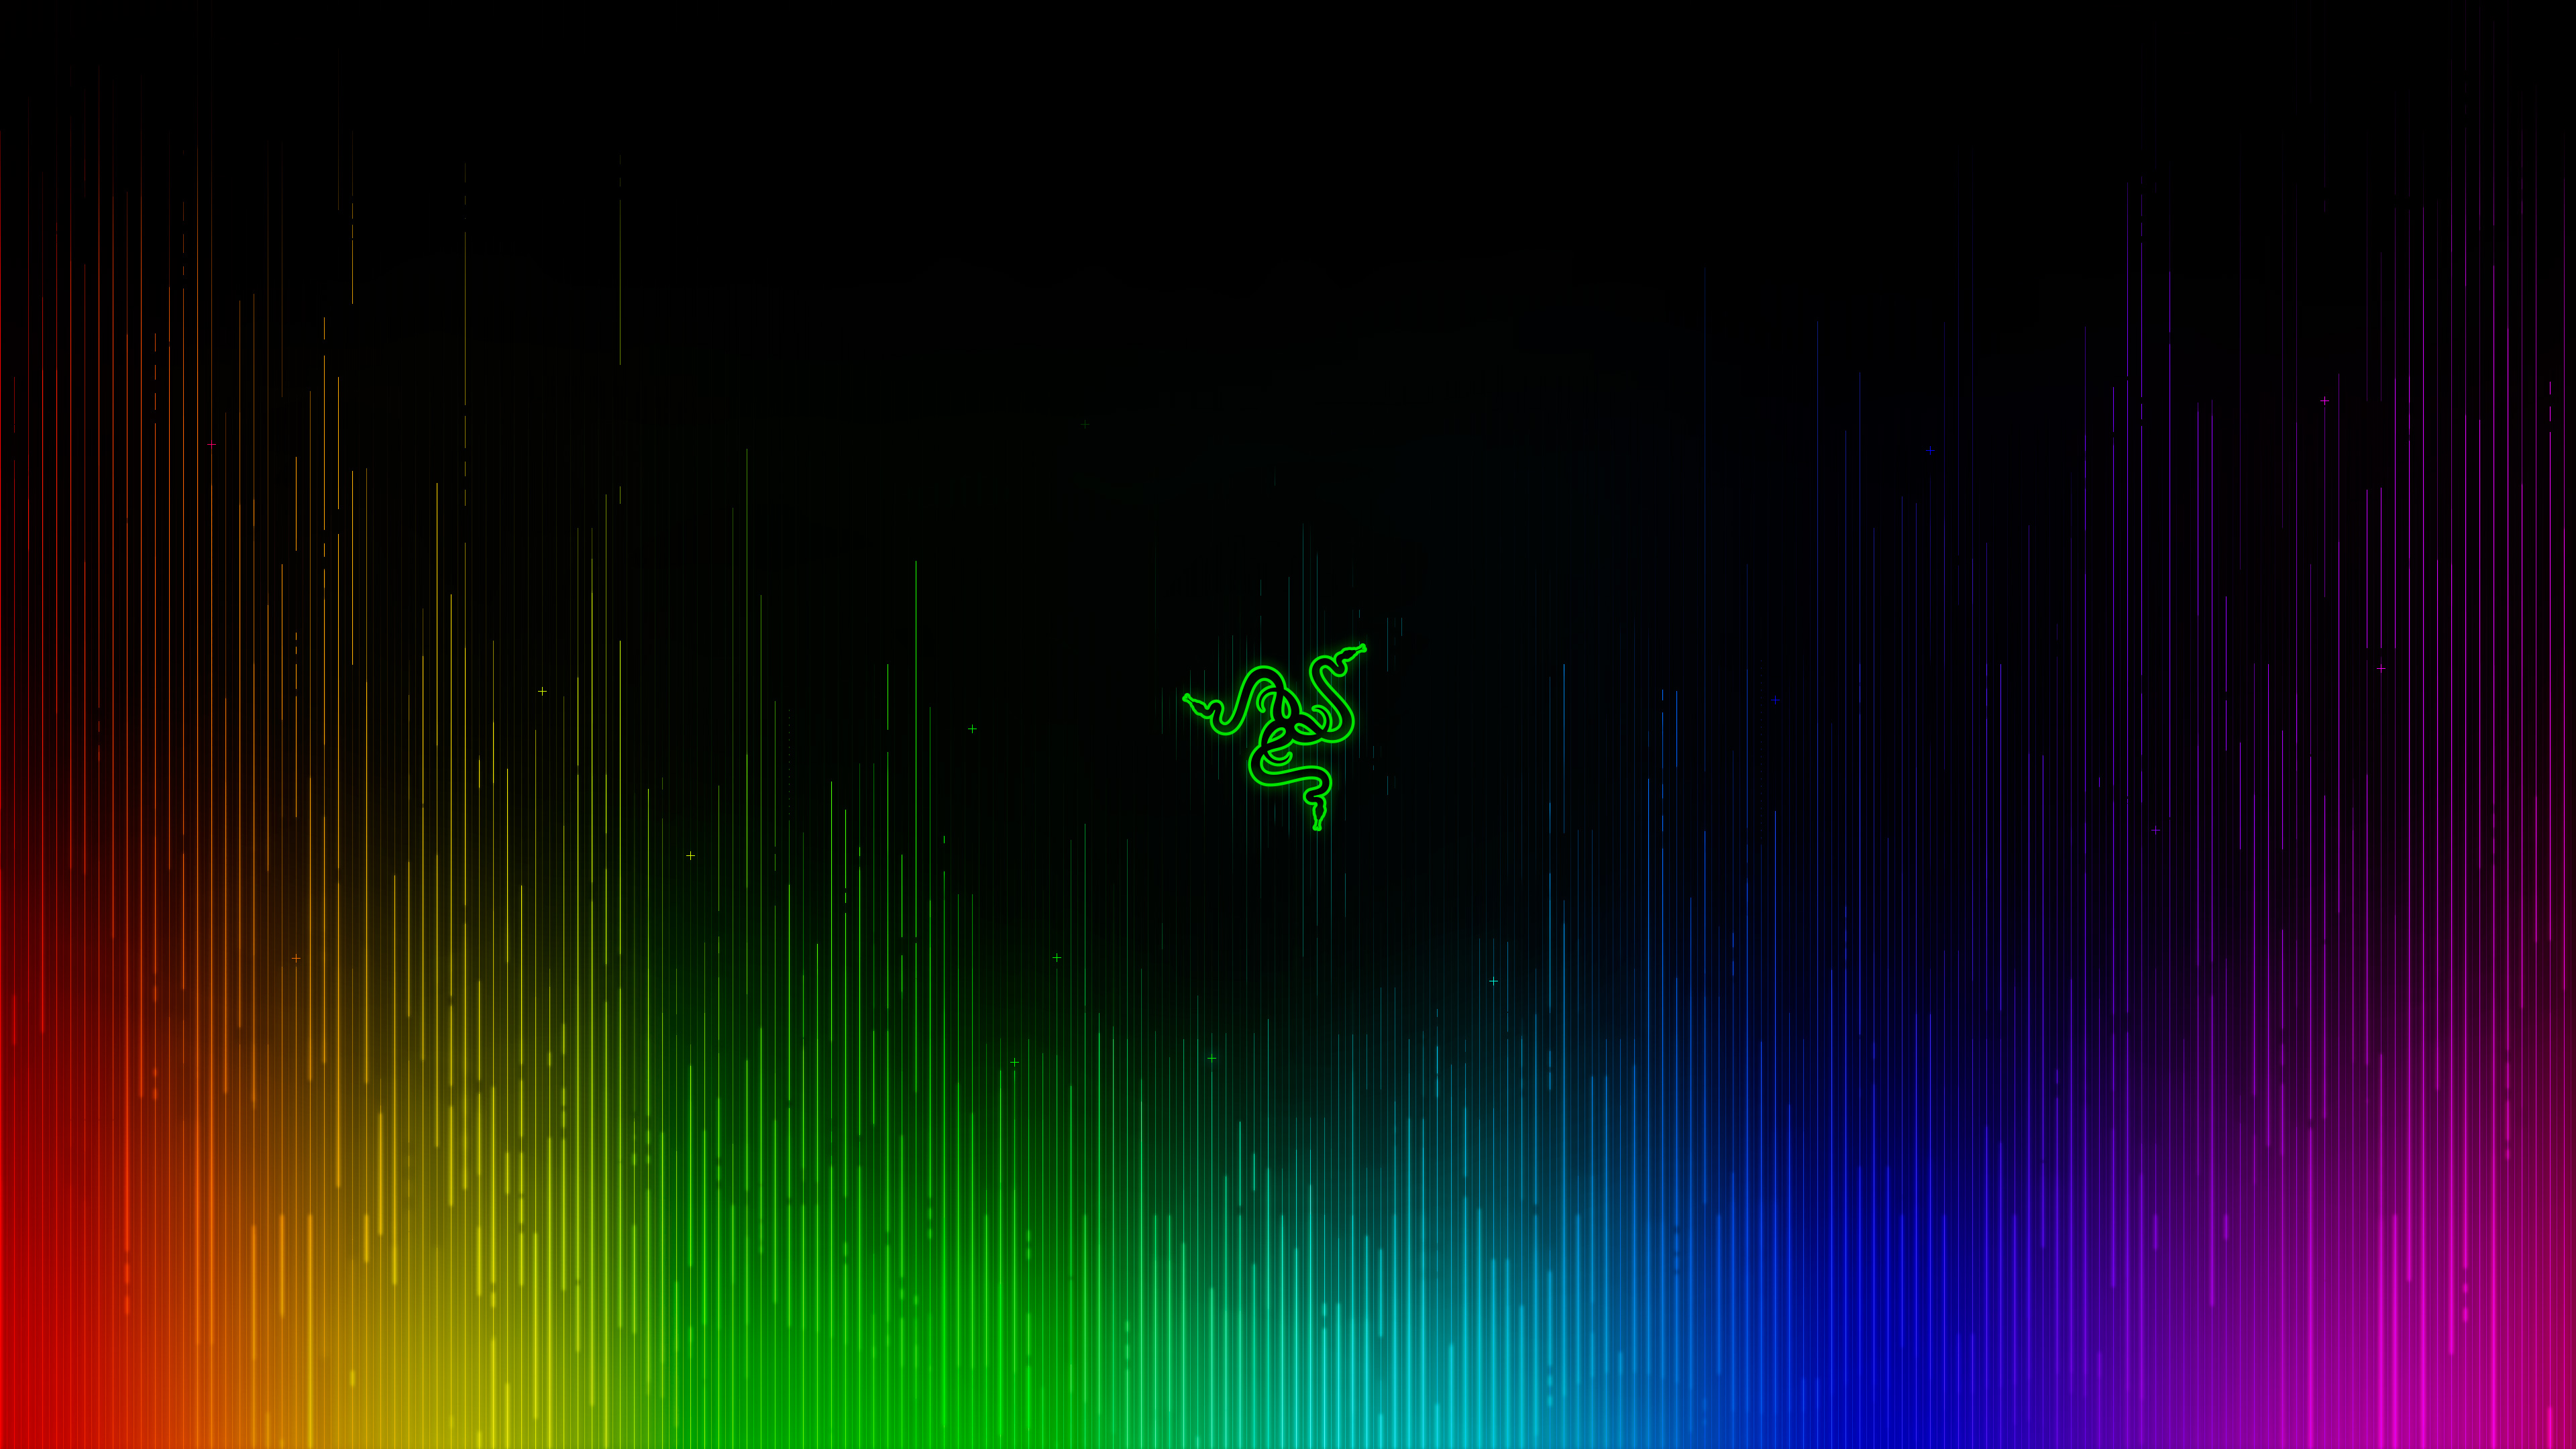 1366x768 razer 4k 1366x768 resolution hd 4k wallpapers images